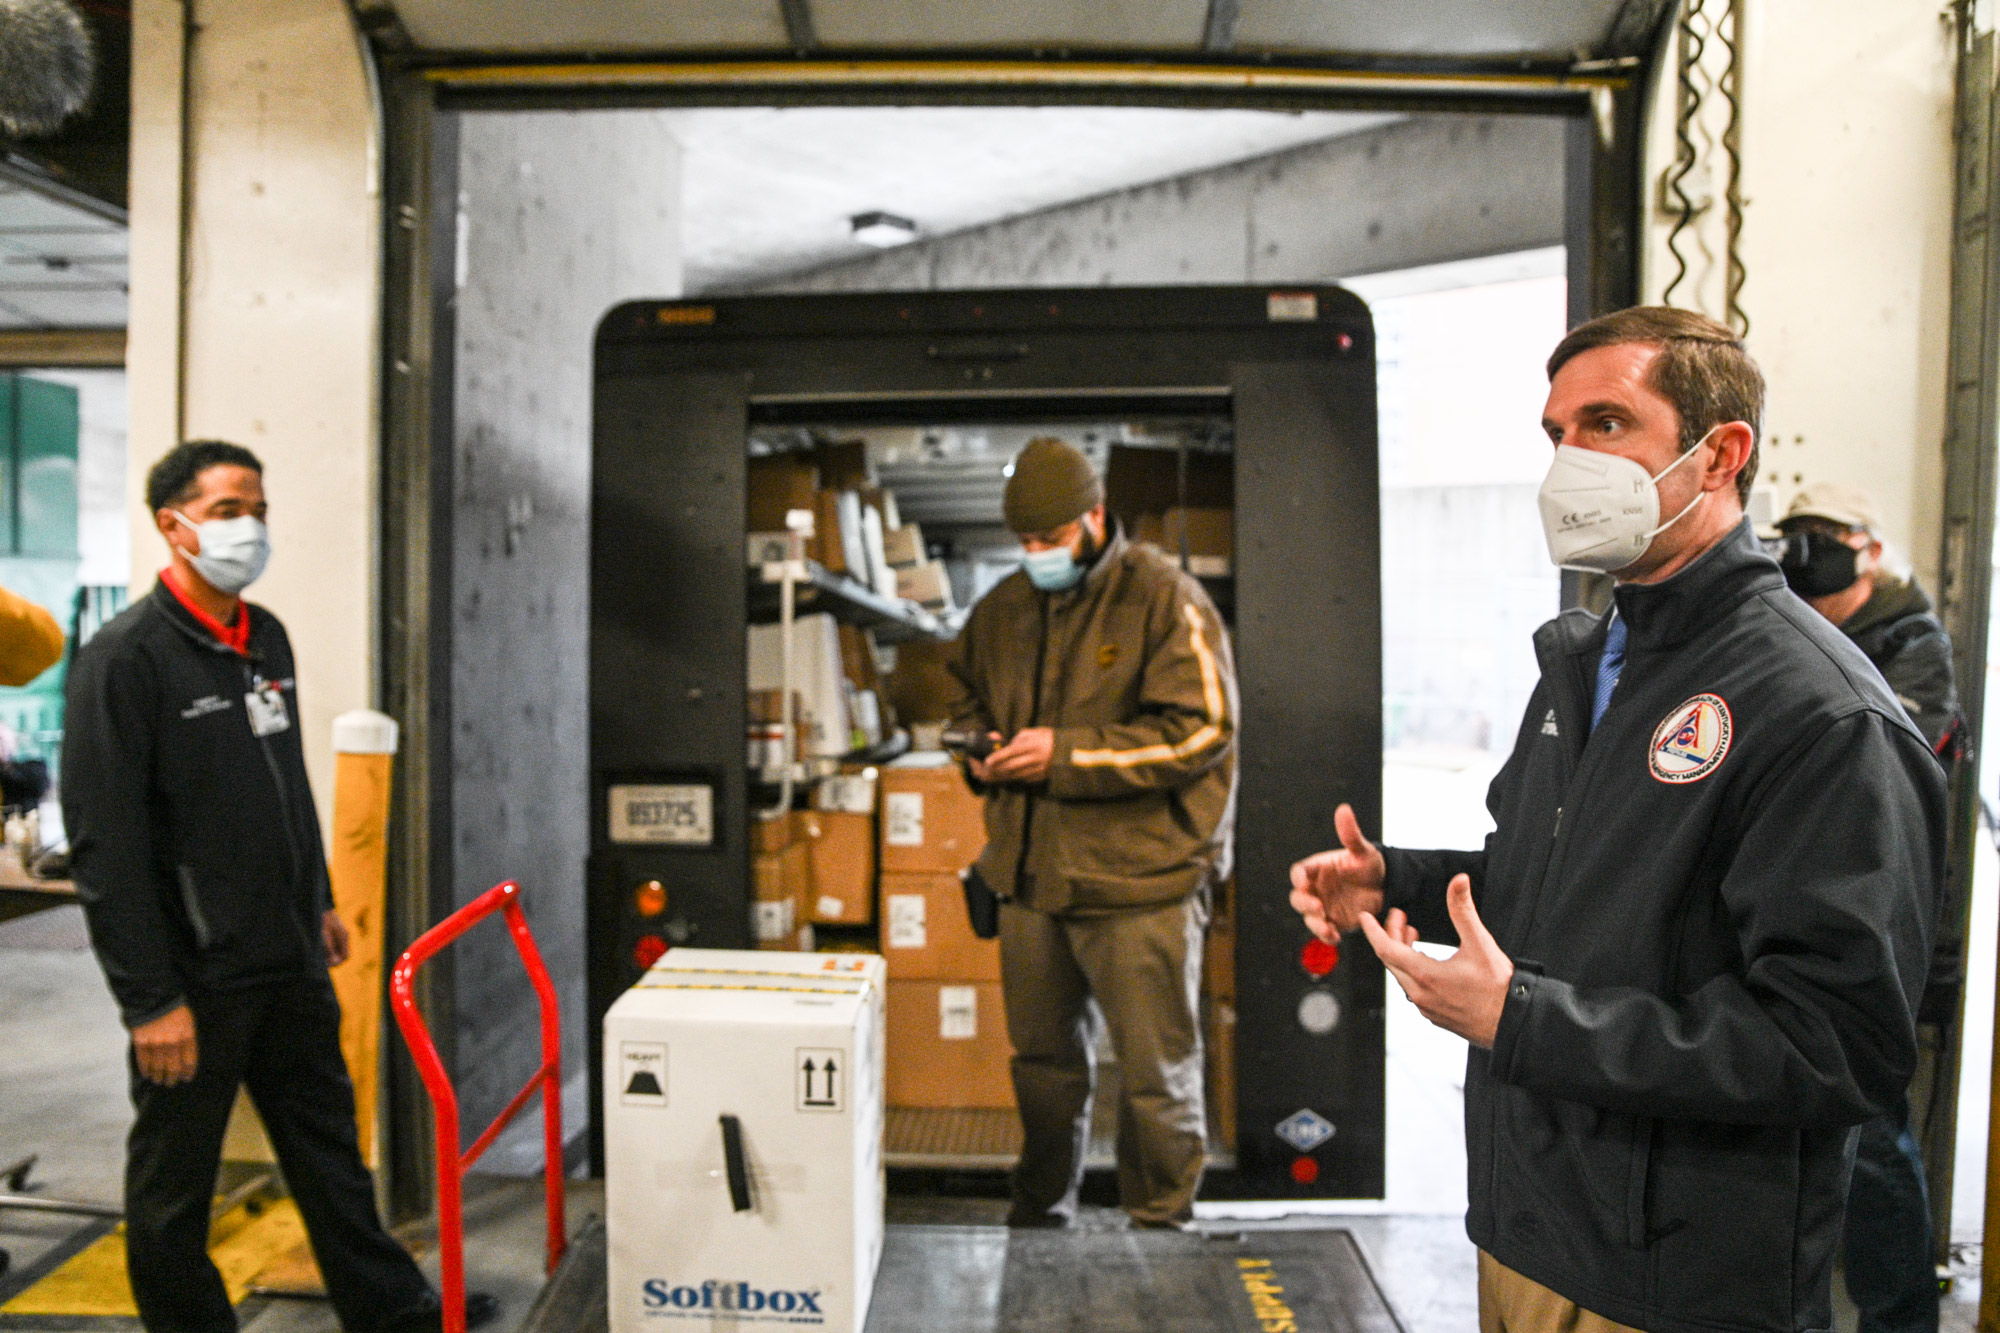 Kentucky Governor Andy Beshear, right, speaks to the media as Byron Bishop, a UPS driver, scans a delivered COVID-19 vaccination package in a loading dock at University of Louisville Hospital on December 14 in Louisville, Kentucky.